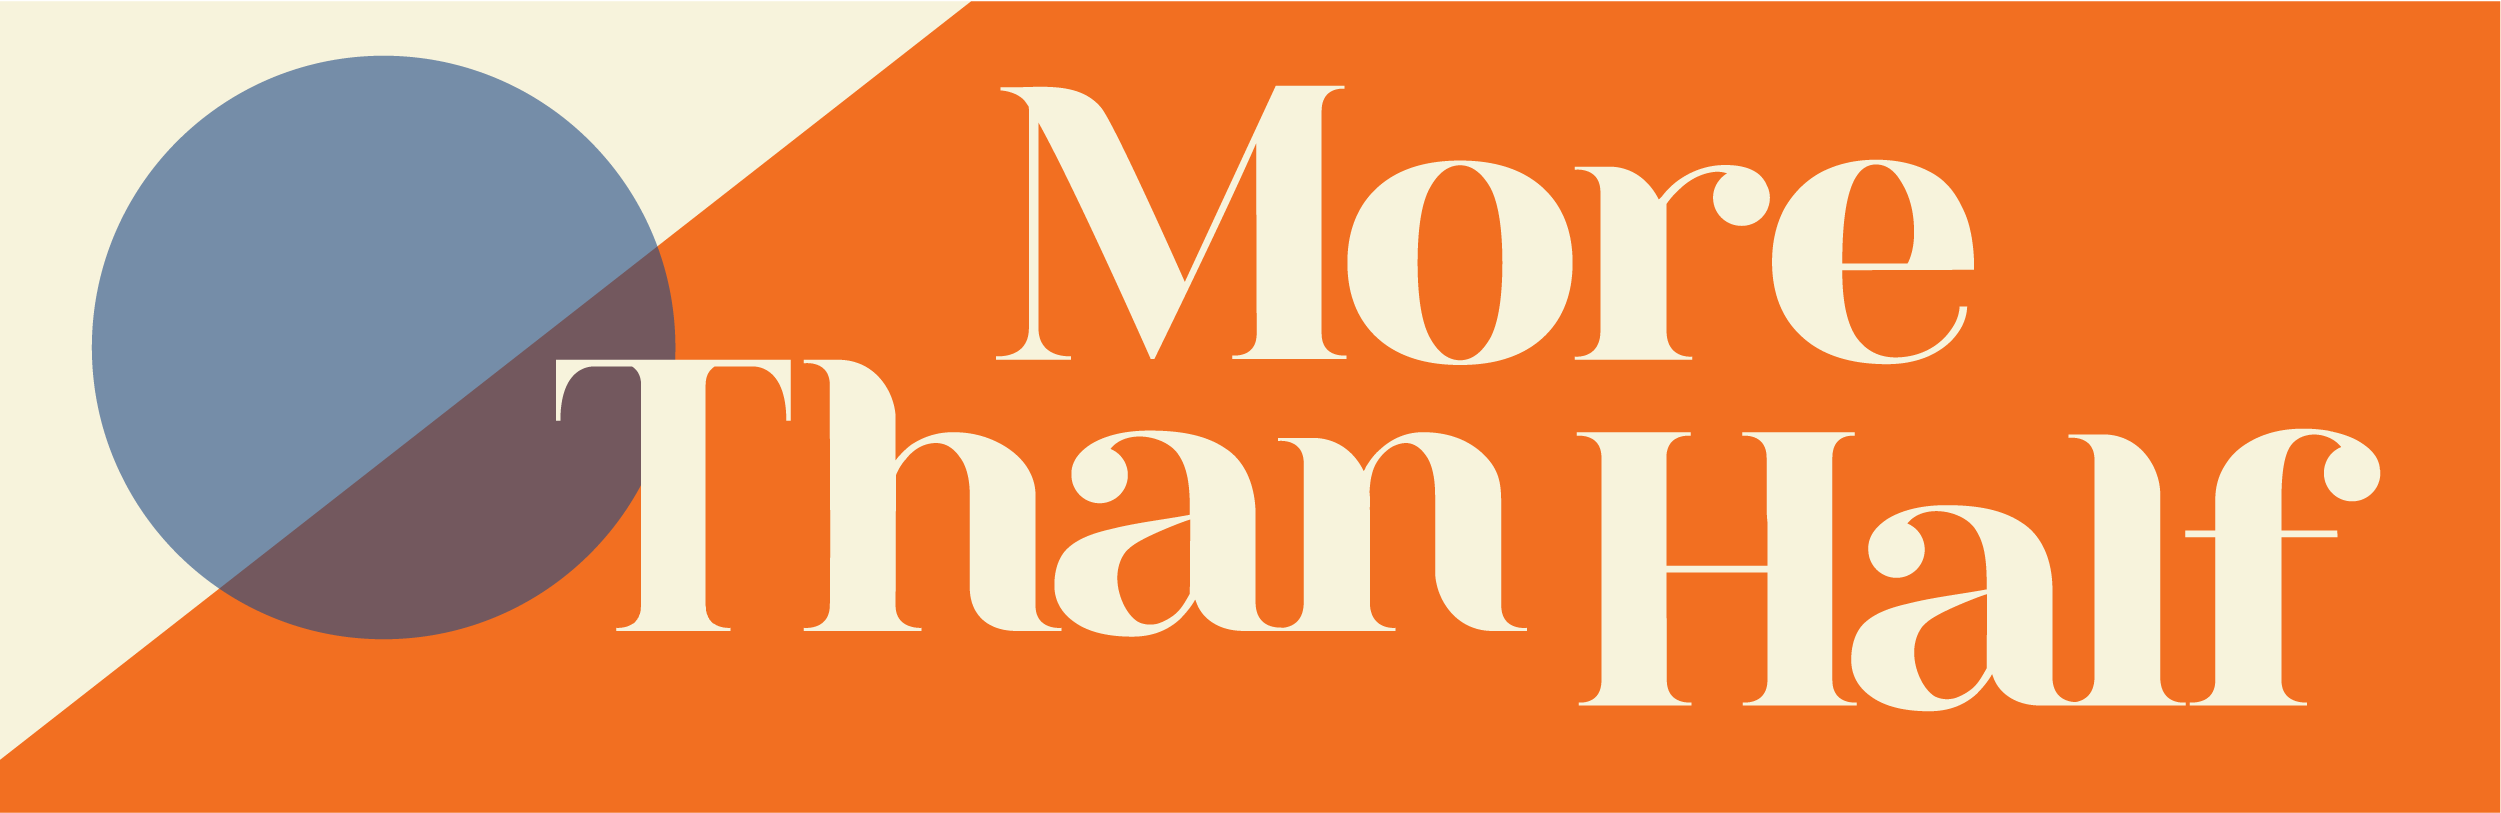 More Than Half is apodcast that uncovers serious challenges facing Utah women and why it takes all of us, regardless of gender, to overcome them.